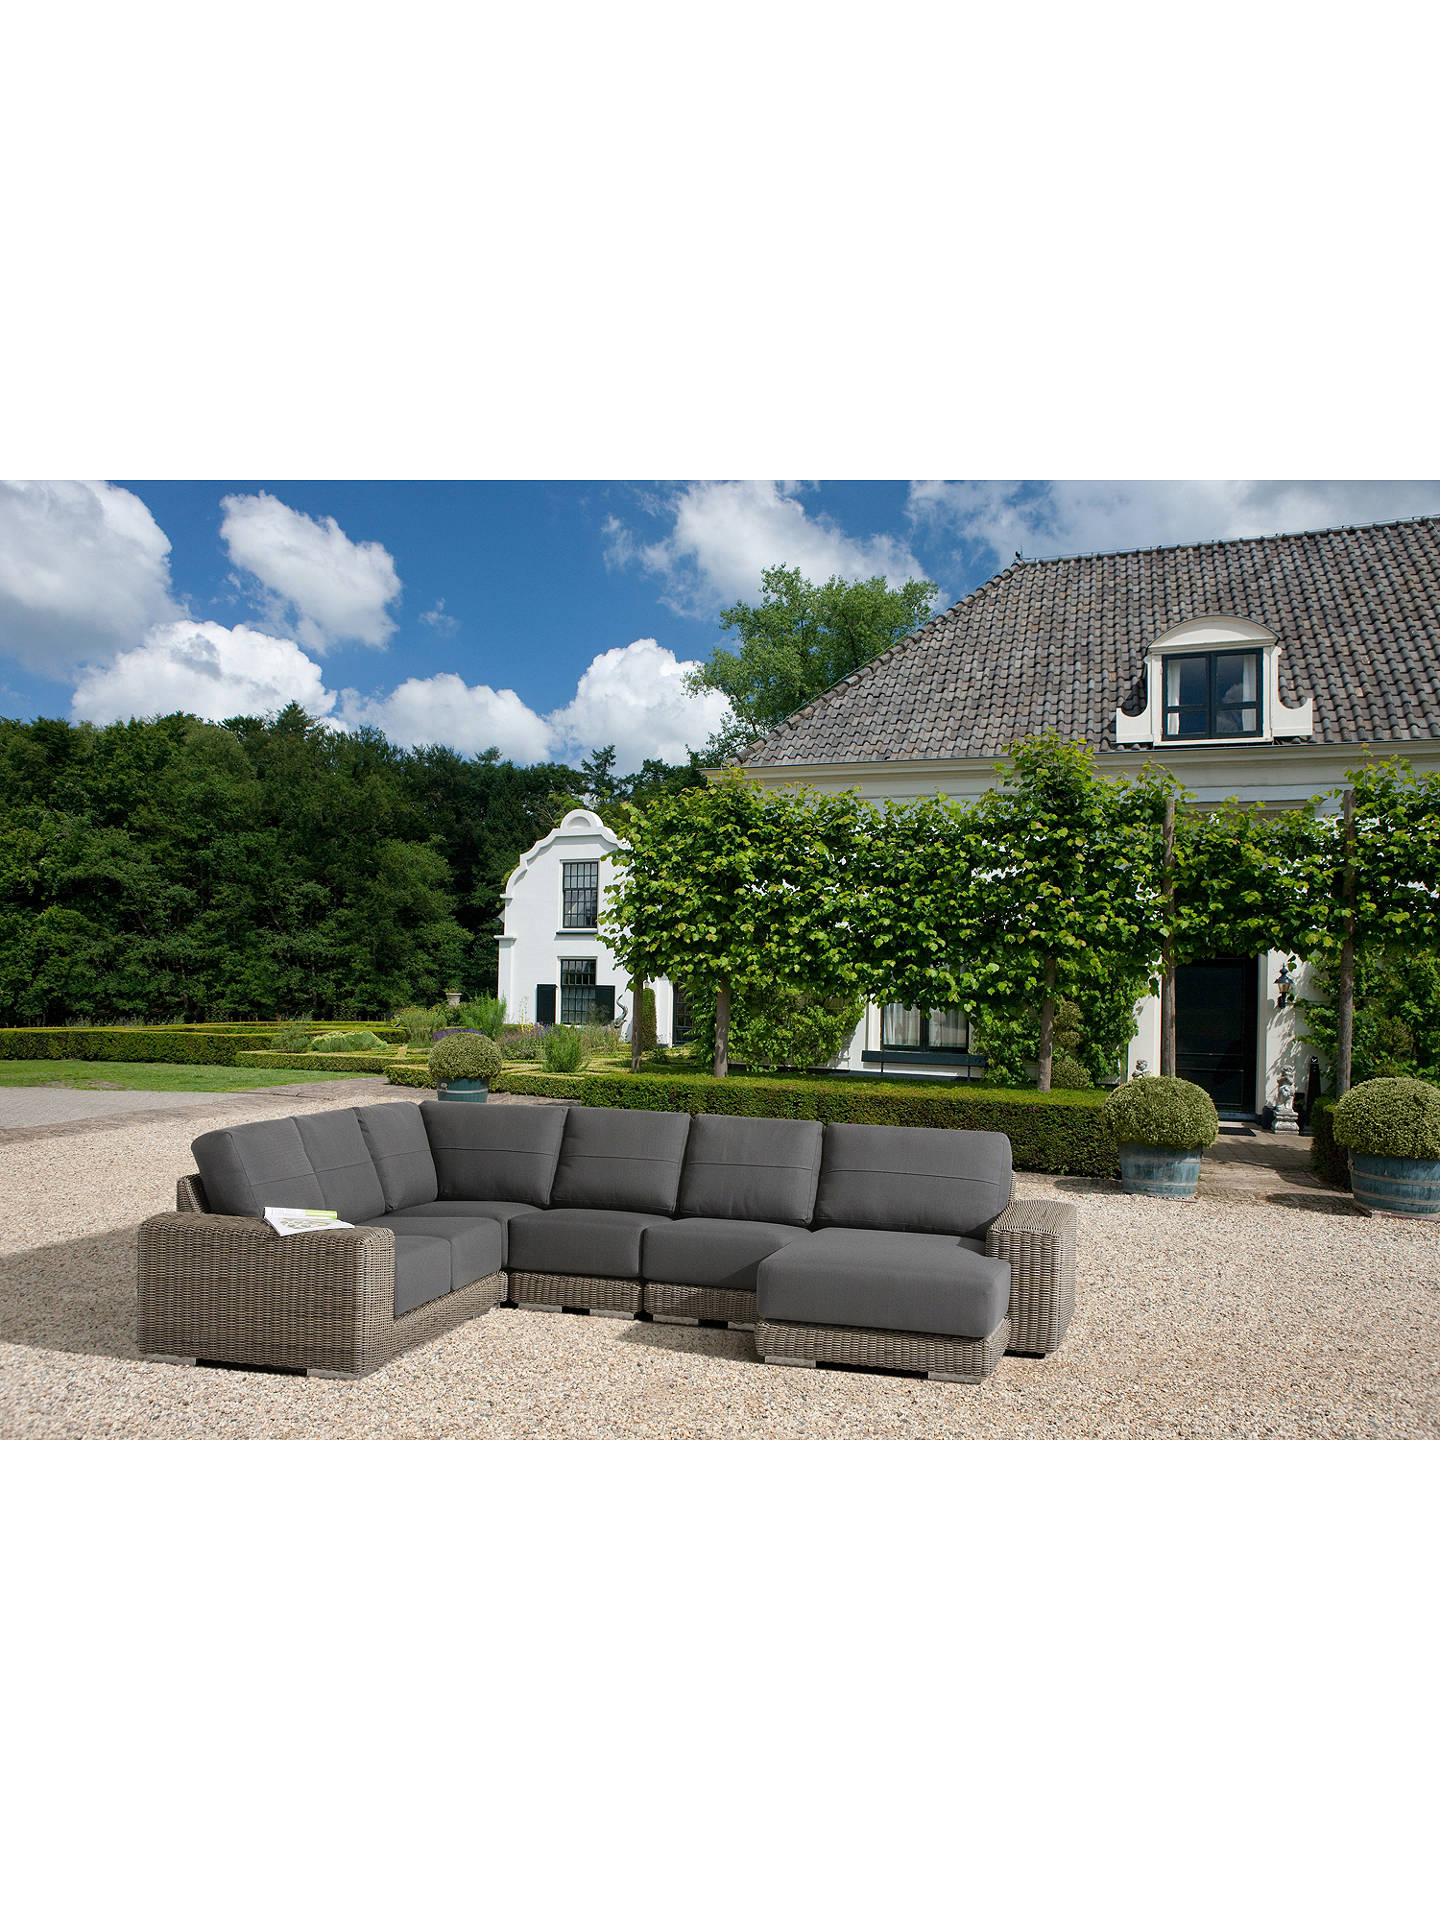 Buy4 Seasons Outdoor Kingston Modular Garden Corner Sofa Online at johnlewis.com